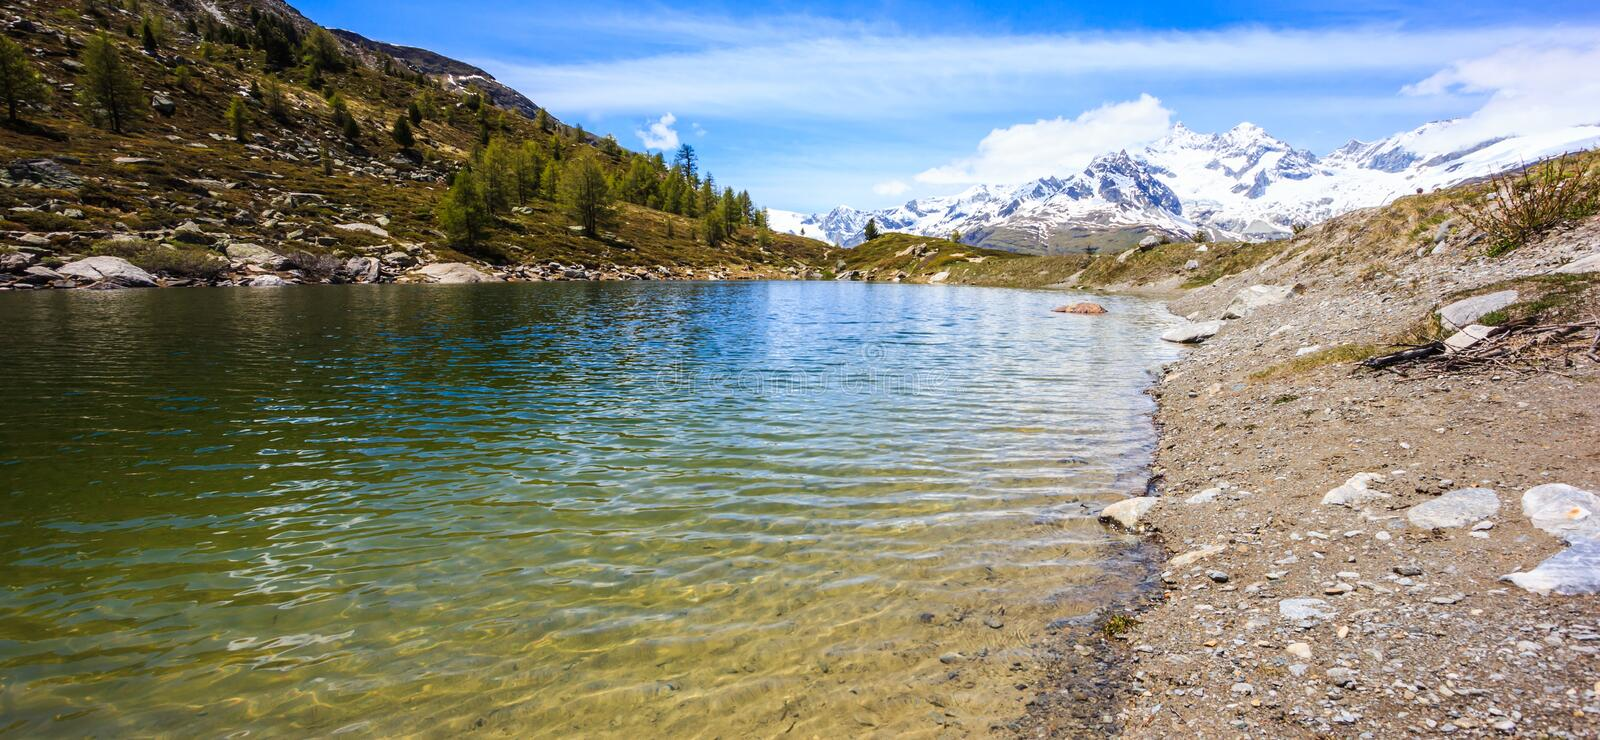 Grunsee Lake, one of top five lakes destination around Matterhorn Peak in Zermatt, Switzerland, Europe stock photography